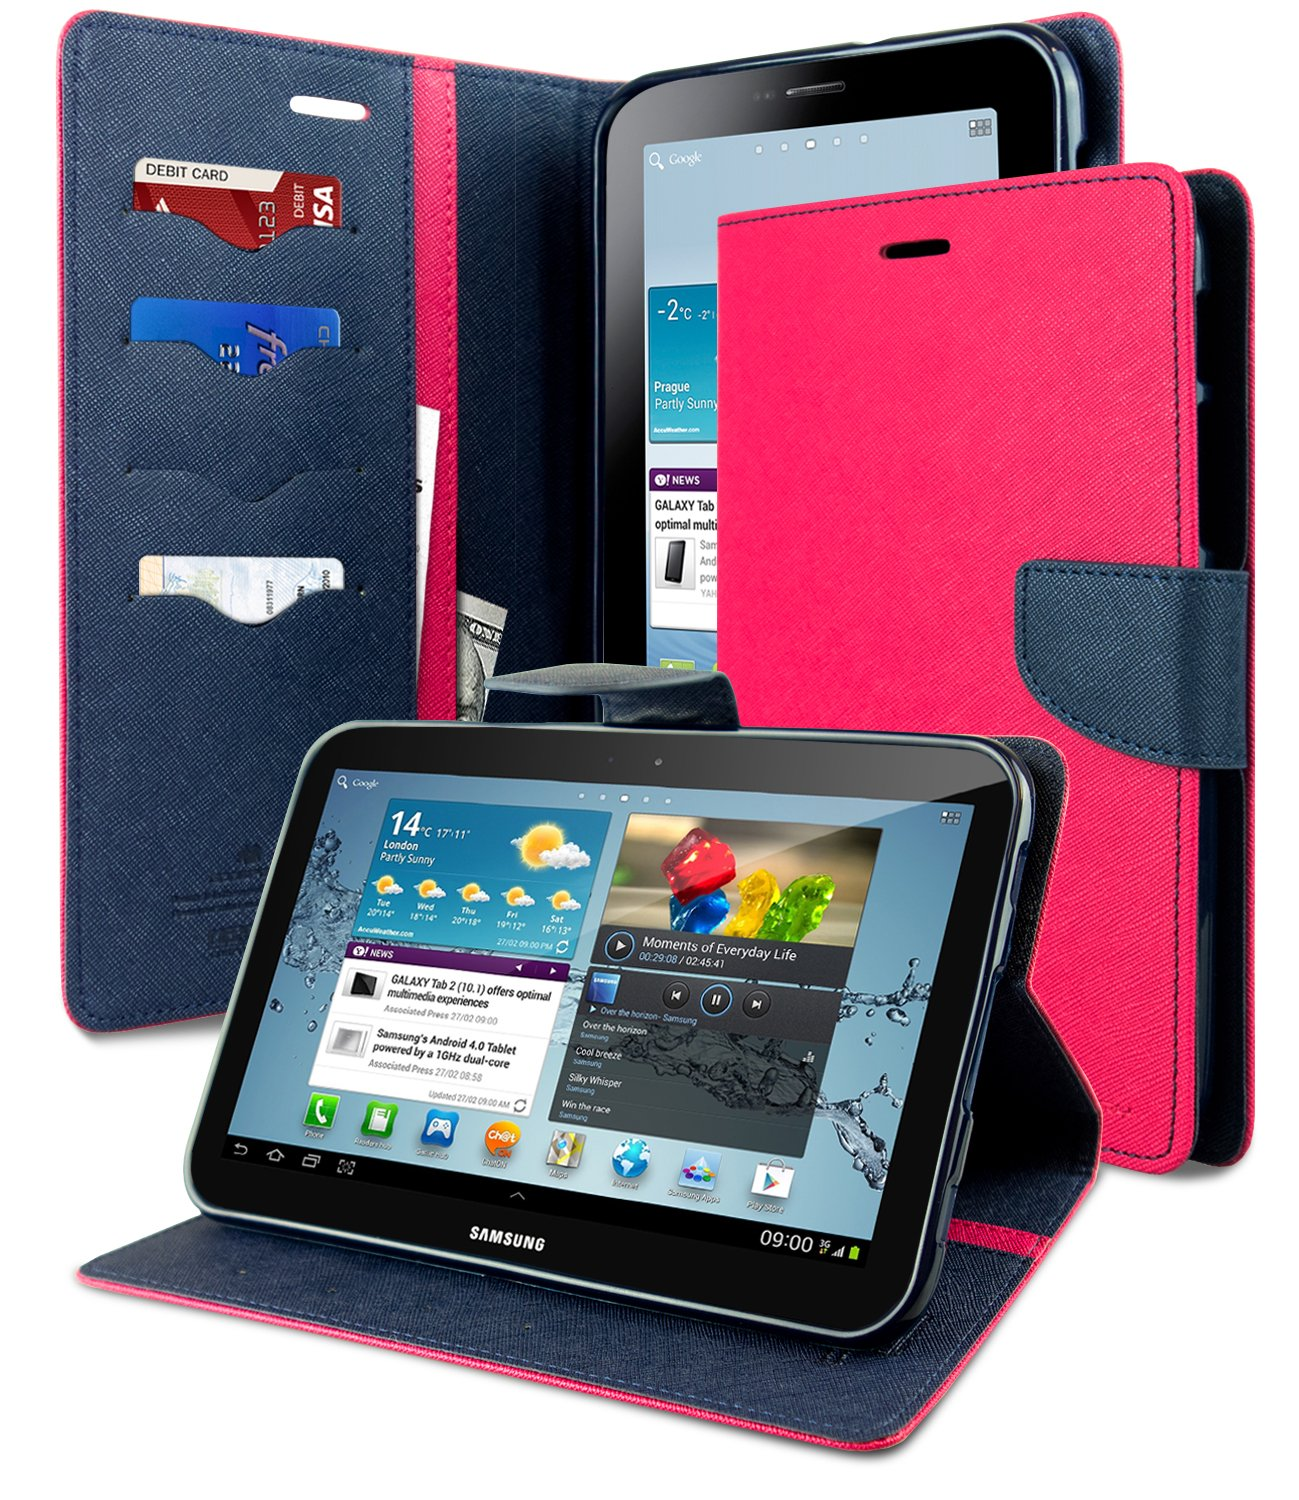 Galaxy Tab 2 70 Case Drop Protection Goospery Iphone 8 Fancy Diary Navy Lime Synthetic Saffiano Leather Ample Pocket Storage Stand Flip Cover For